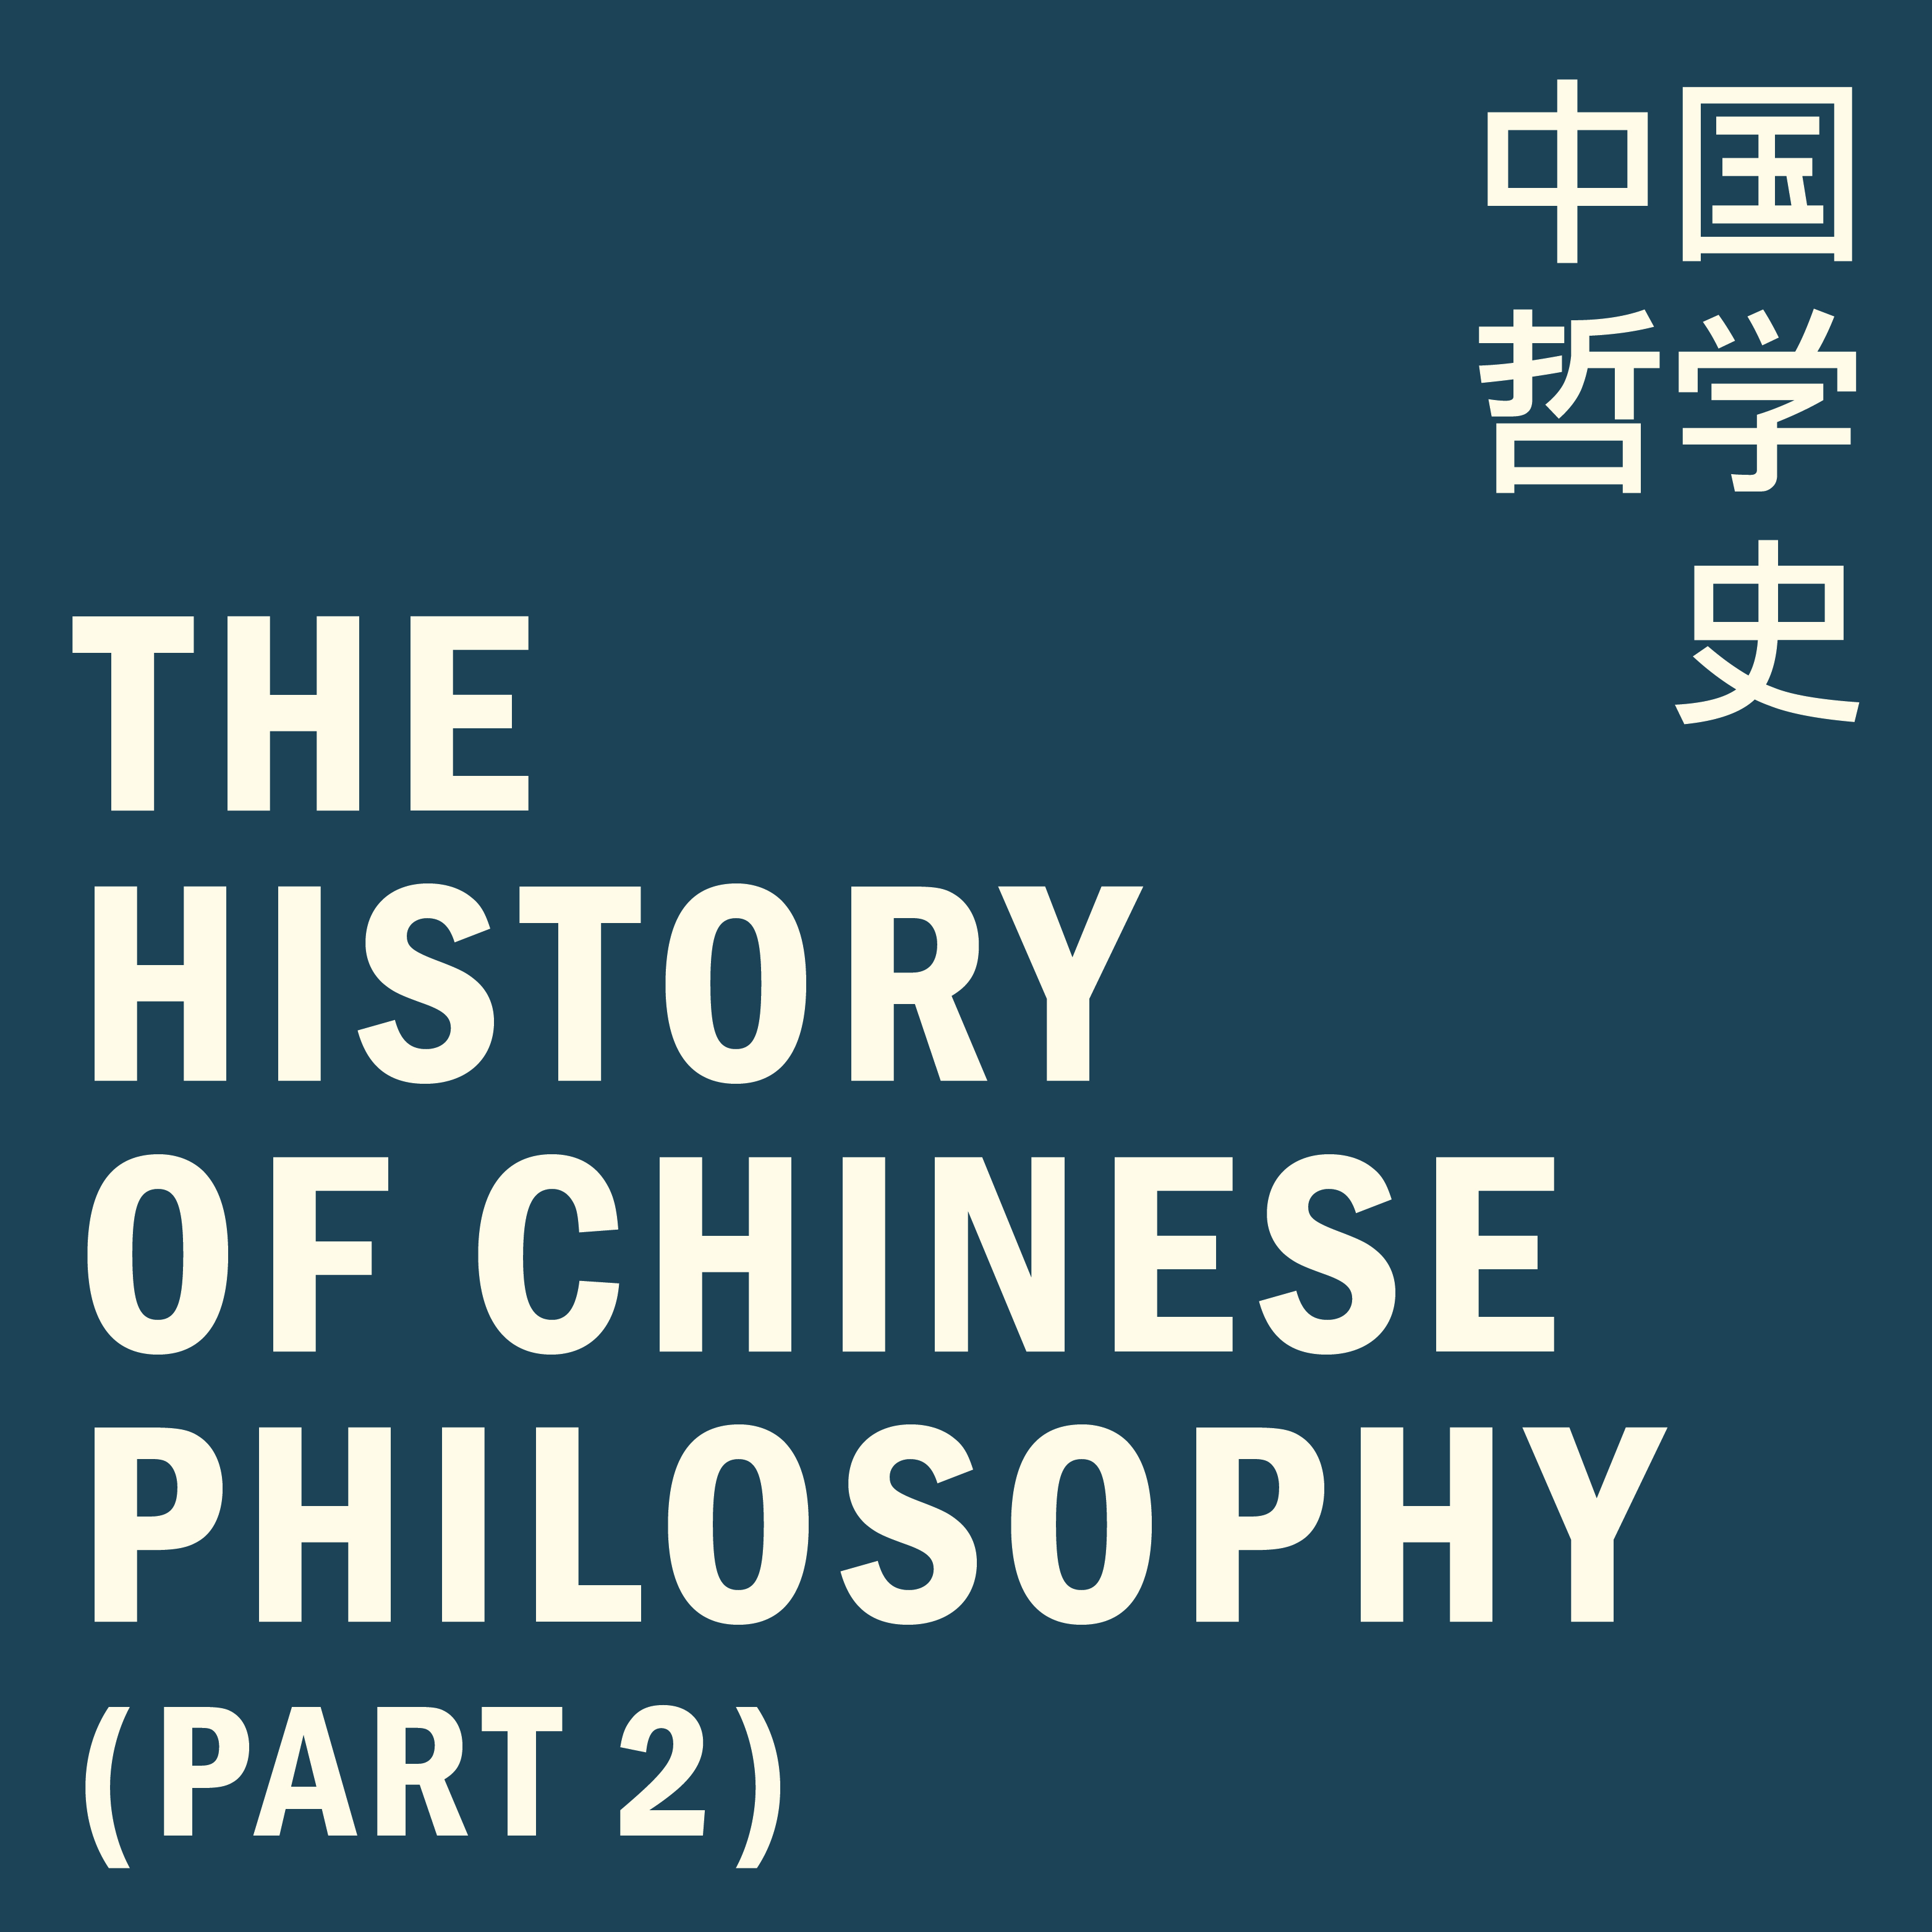 CHP-185-The History of Chinese Philosophy Part 2